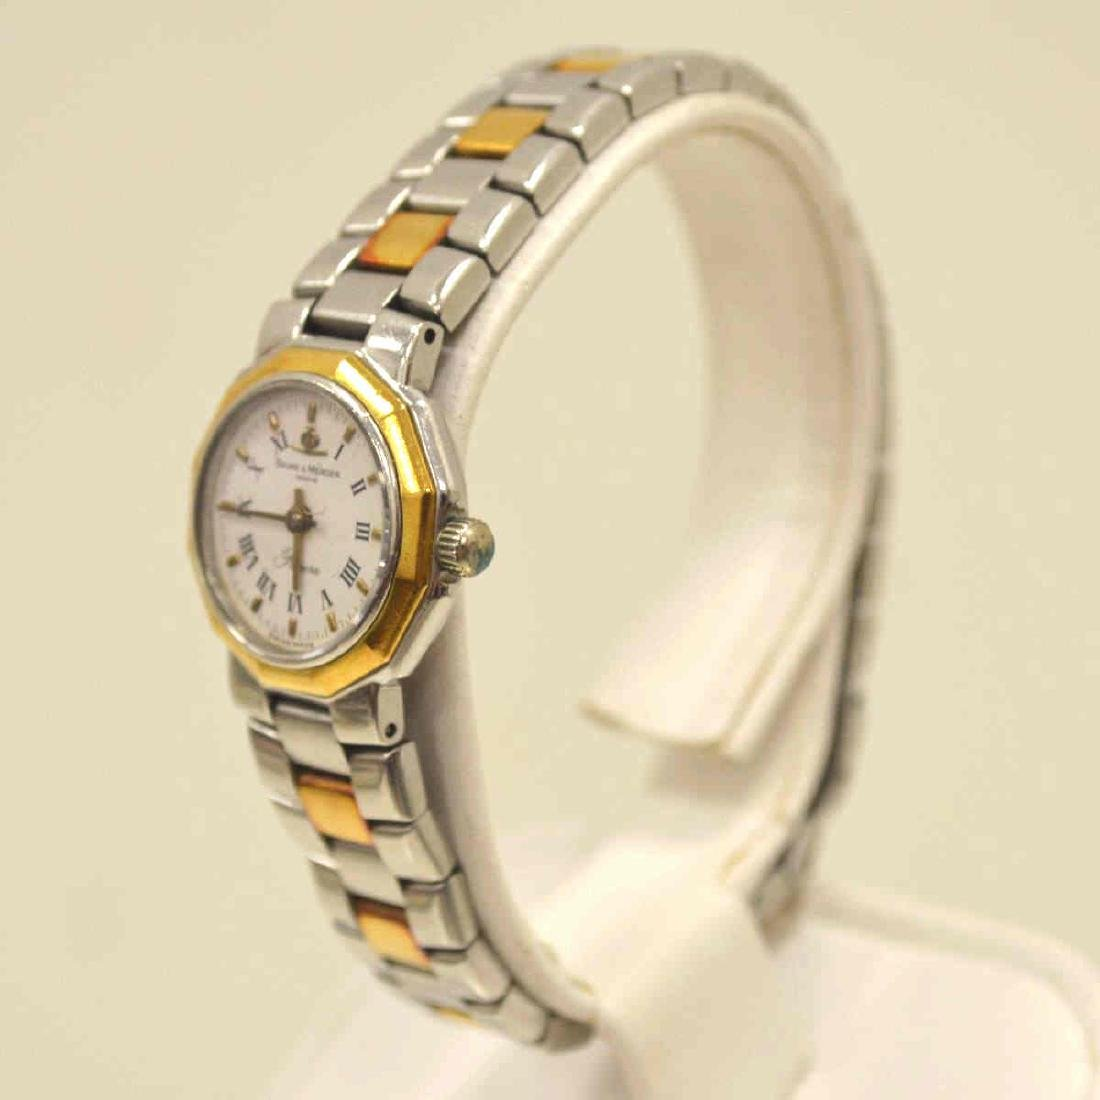 Ladies Two Tone Baume & Mercier Watch - 4